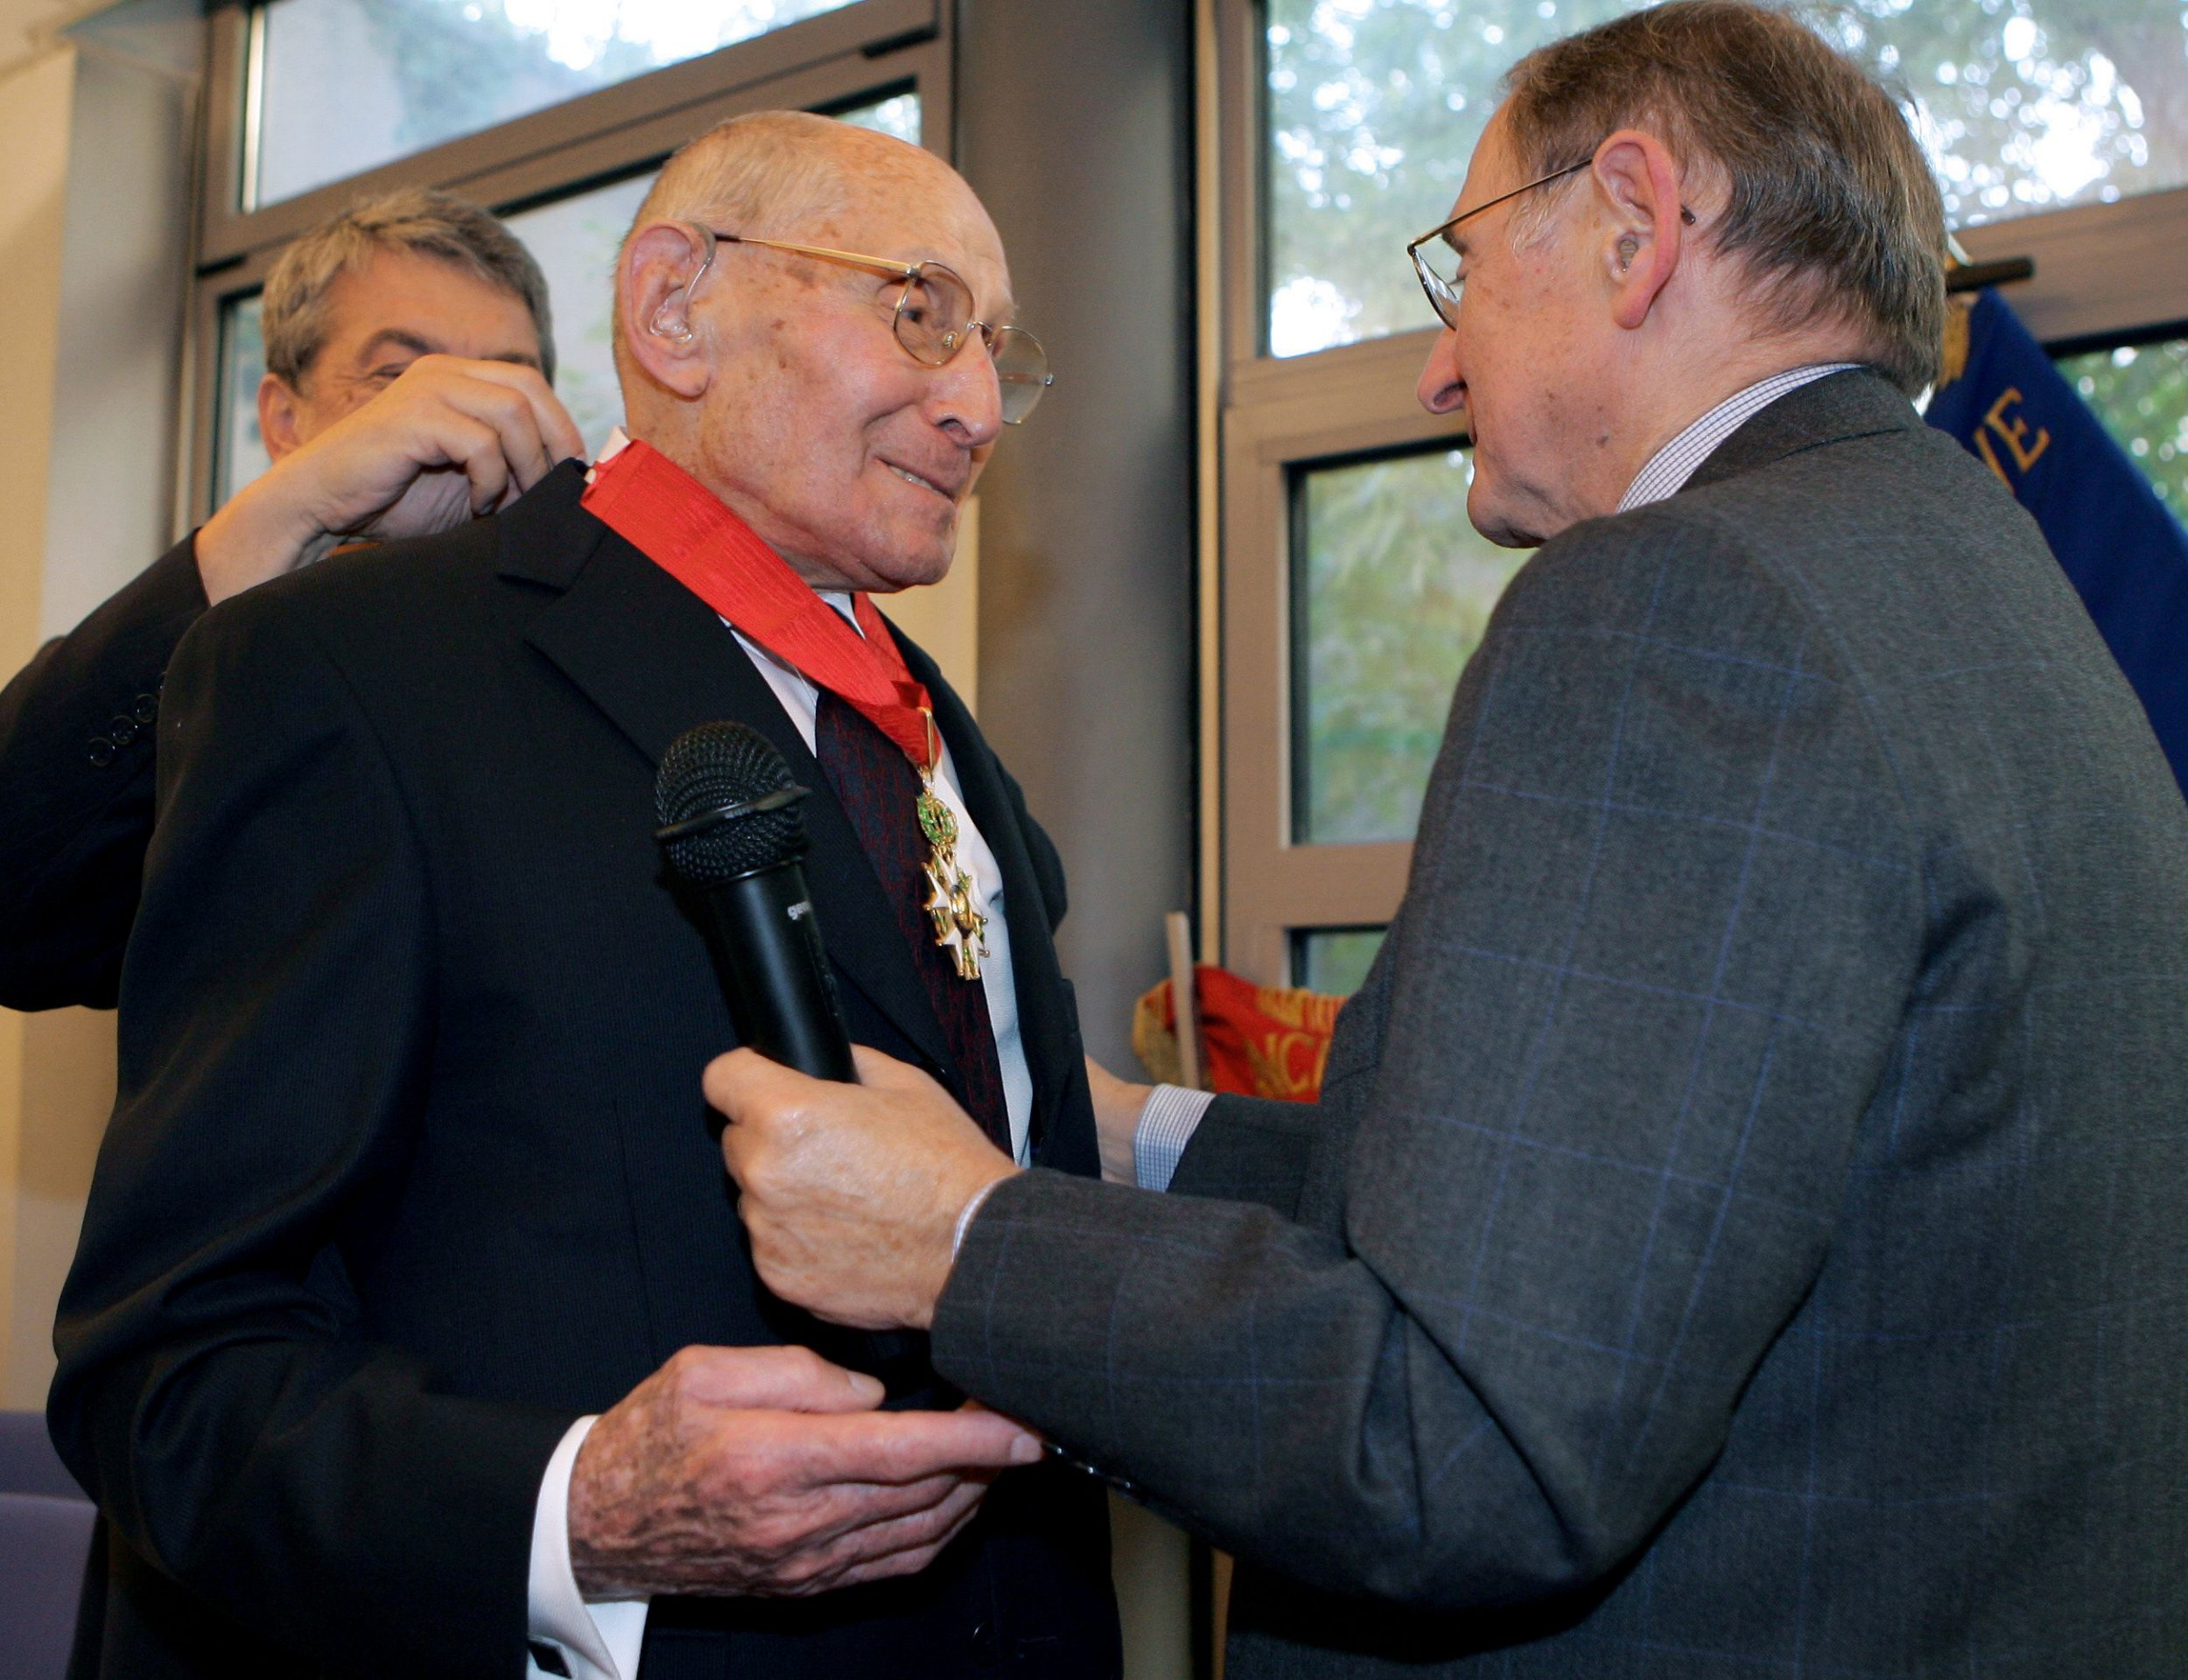 (FILES) In this file photo taken on September 19, 2005 Georges Loinger (L), head of the French Jewish Resistance Association (Association de la R??sistance juive de France, ARJF), is awarded with the title of Commandeur de la Legion d'Honneur (commander of the Legion of Honour) in Paris, France. - Georges Loinger died on December 29, 2018, at the age of 108. He was a French resistance fighter during World War II, and rescued hundreds of Jewish children. (Photo by Jacques DEMARTHON / AFP)JACQUES DEMARTHON/AFP/Getty Images